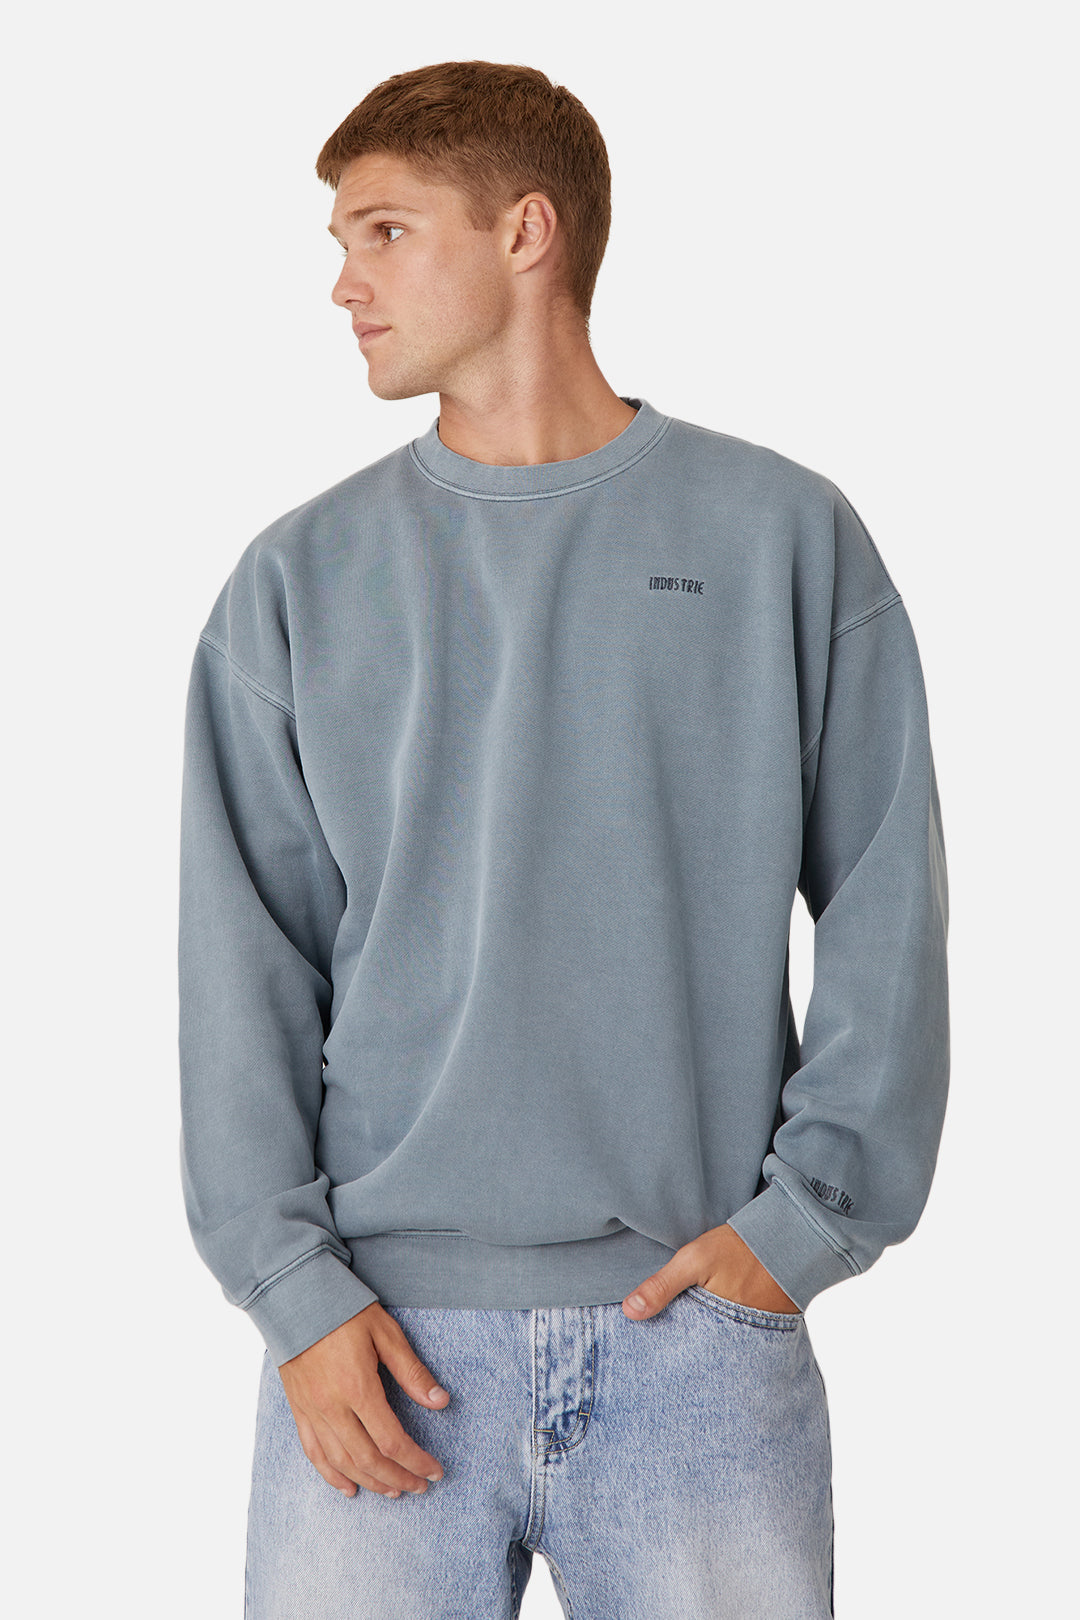 The Del Sur Sweat - OD Blue Slate